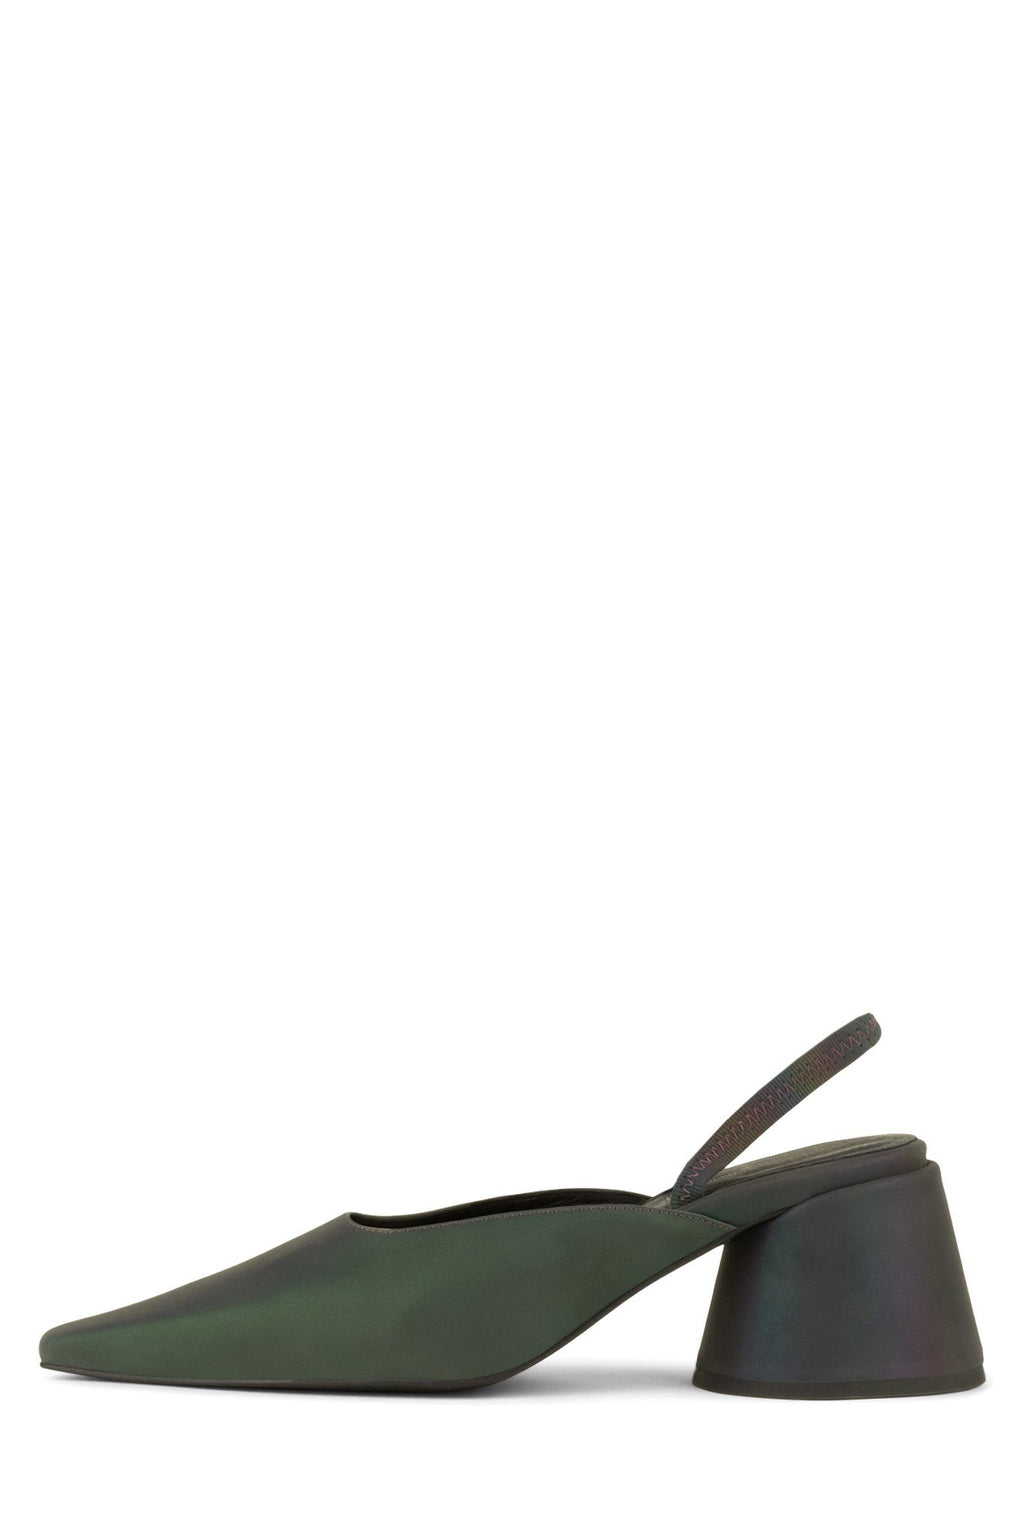 SERRA-S Heeled Mule YYH Purple Reflective 6